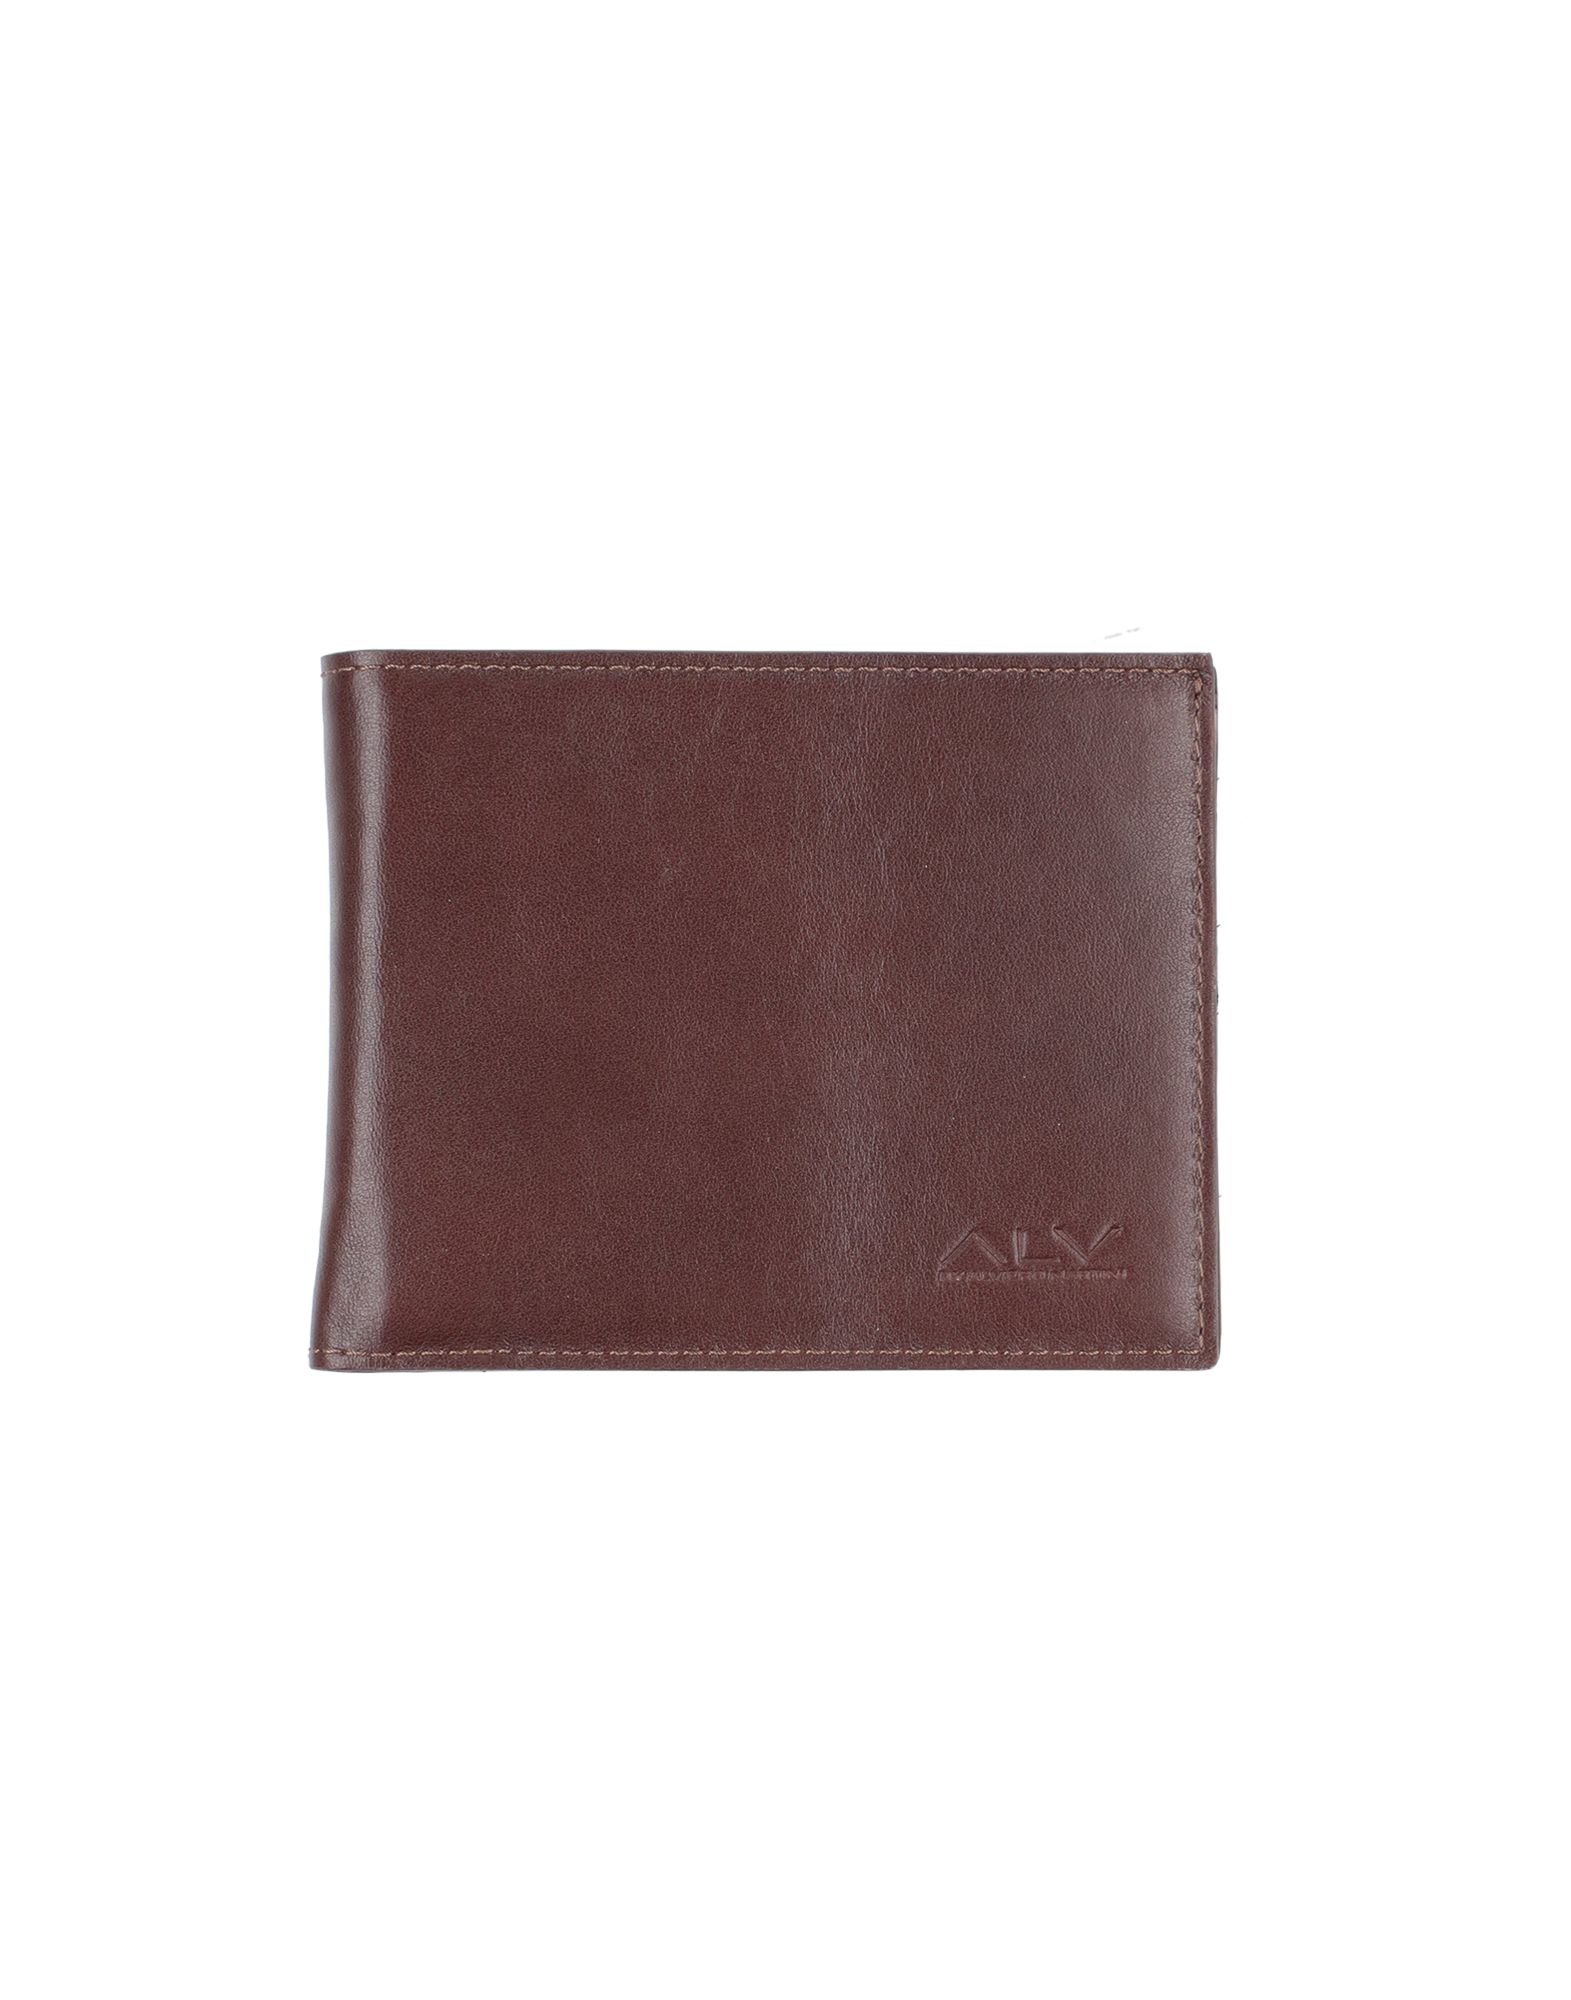 HOGAN Wallets. leather, nappa leather, logo, solid color, fully lined, internal card slots, contains non-textile parts of animal origin. Soft Leather